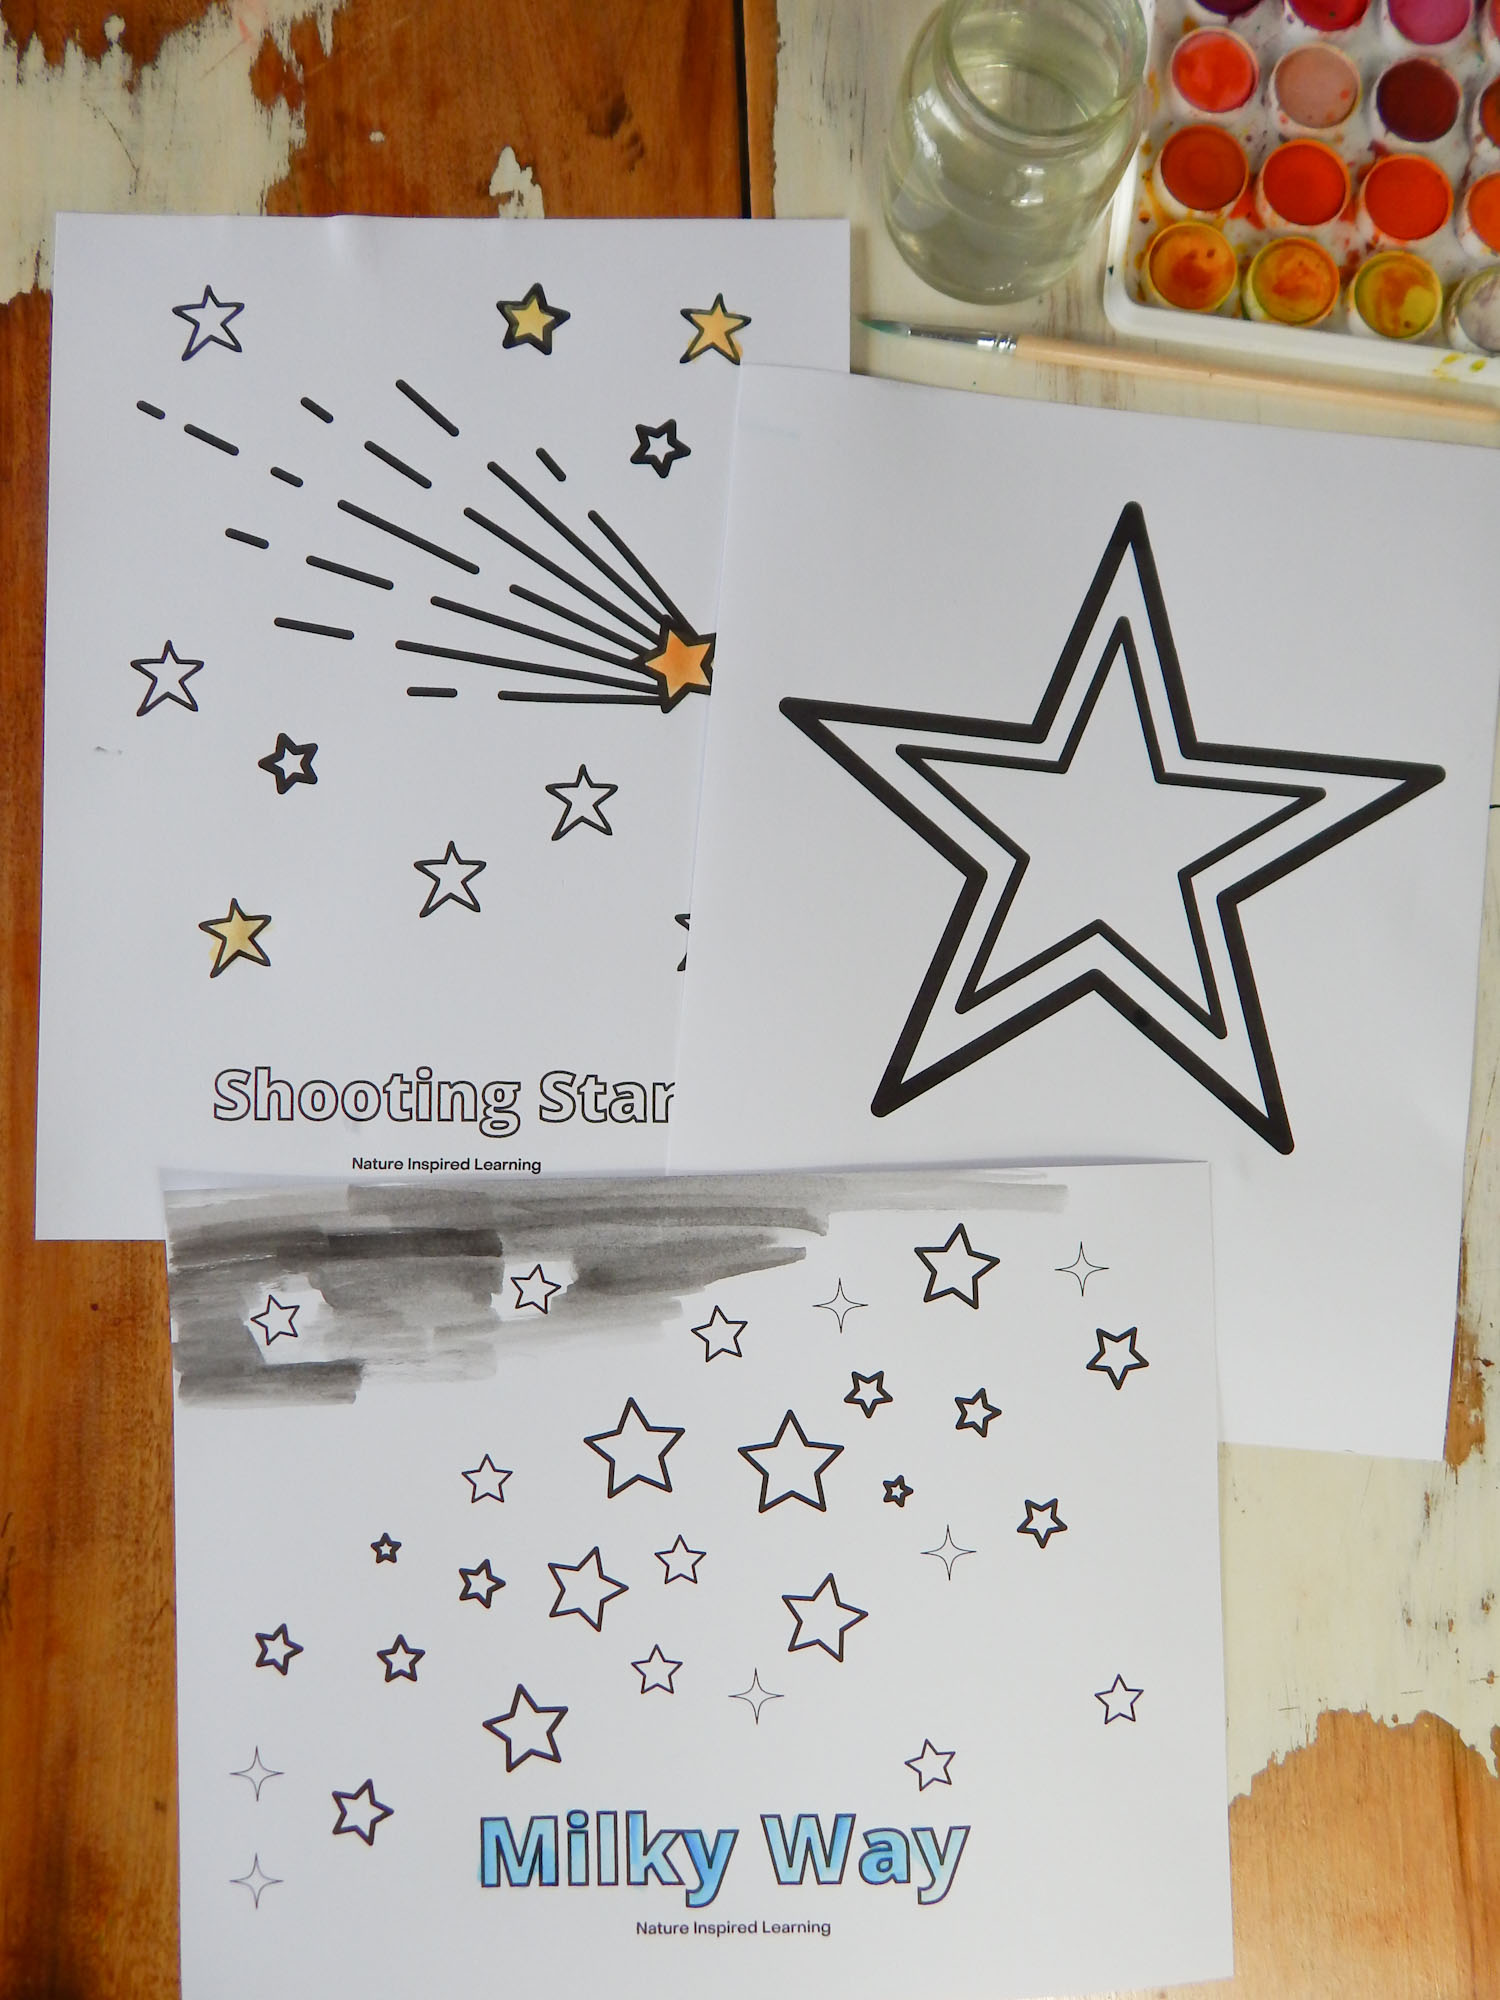 collection of star coloring pages printed out on a wooden table partially colored in using watercolor paint. Large star, milky way, and shooting star sheets. Glass jar with water above, wooden paint brush, and watercolor set top corner